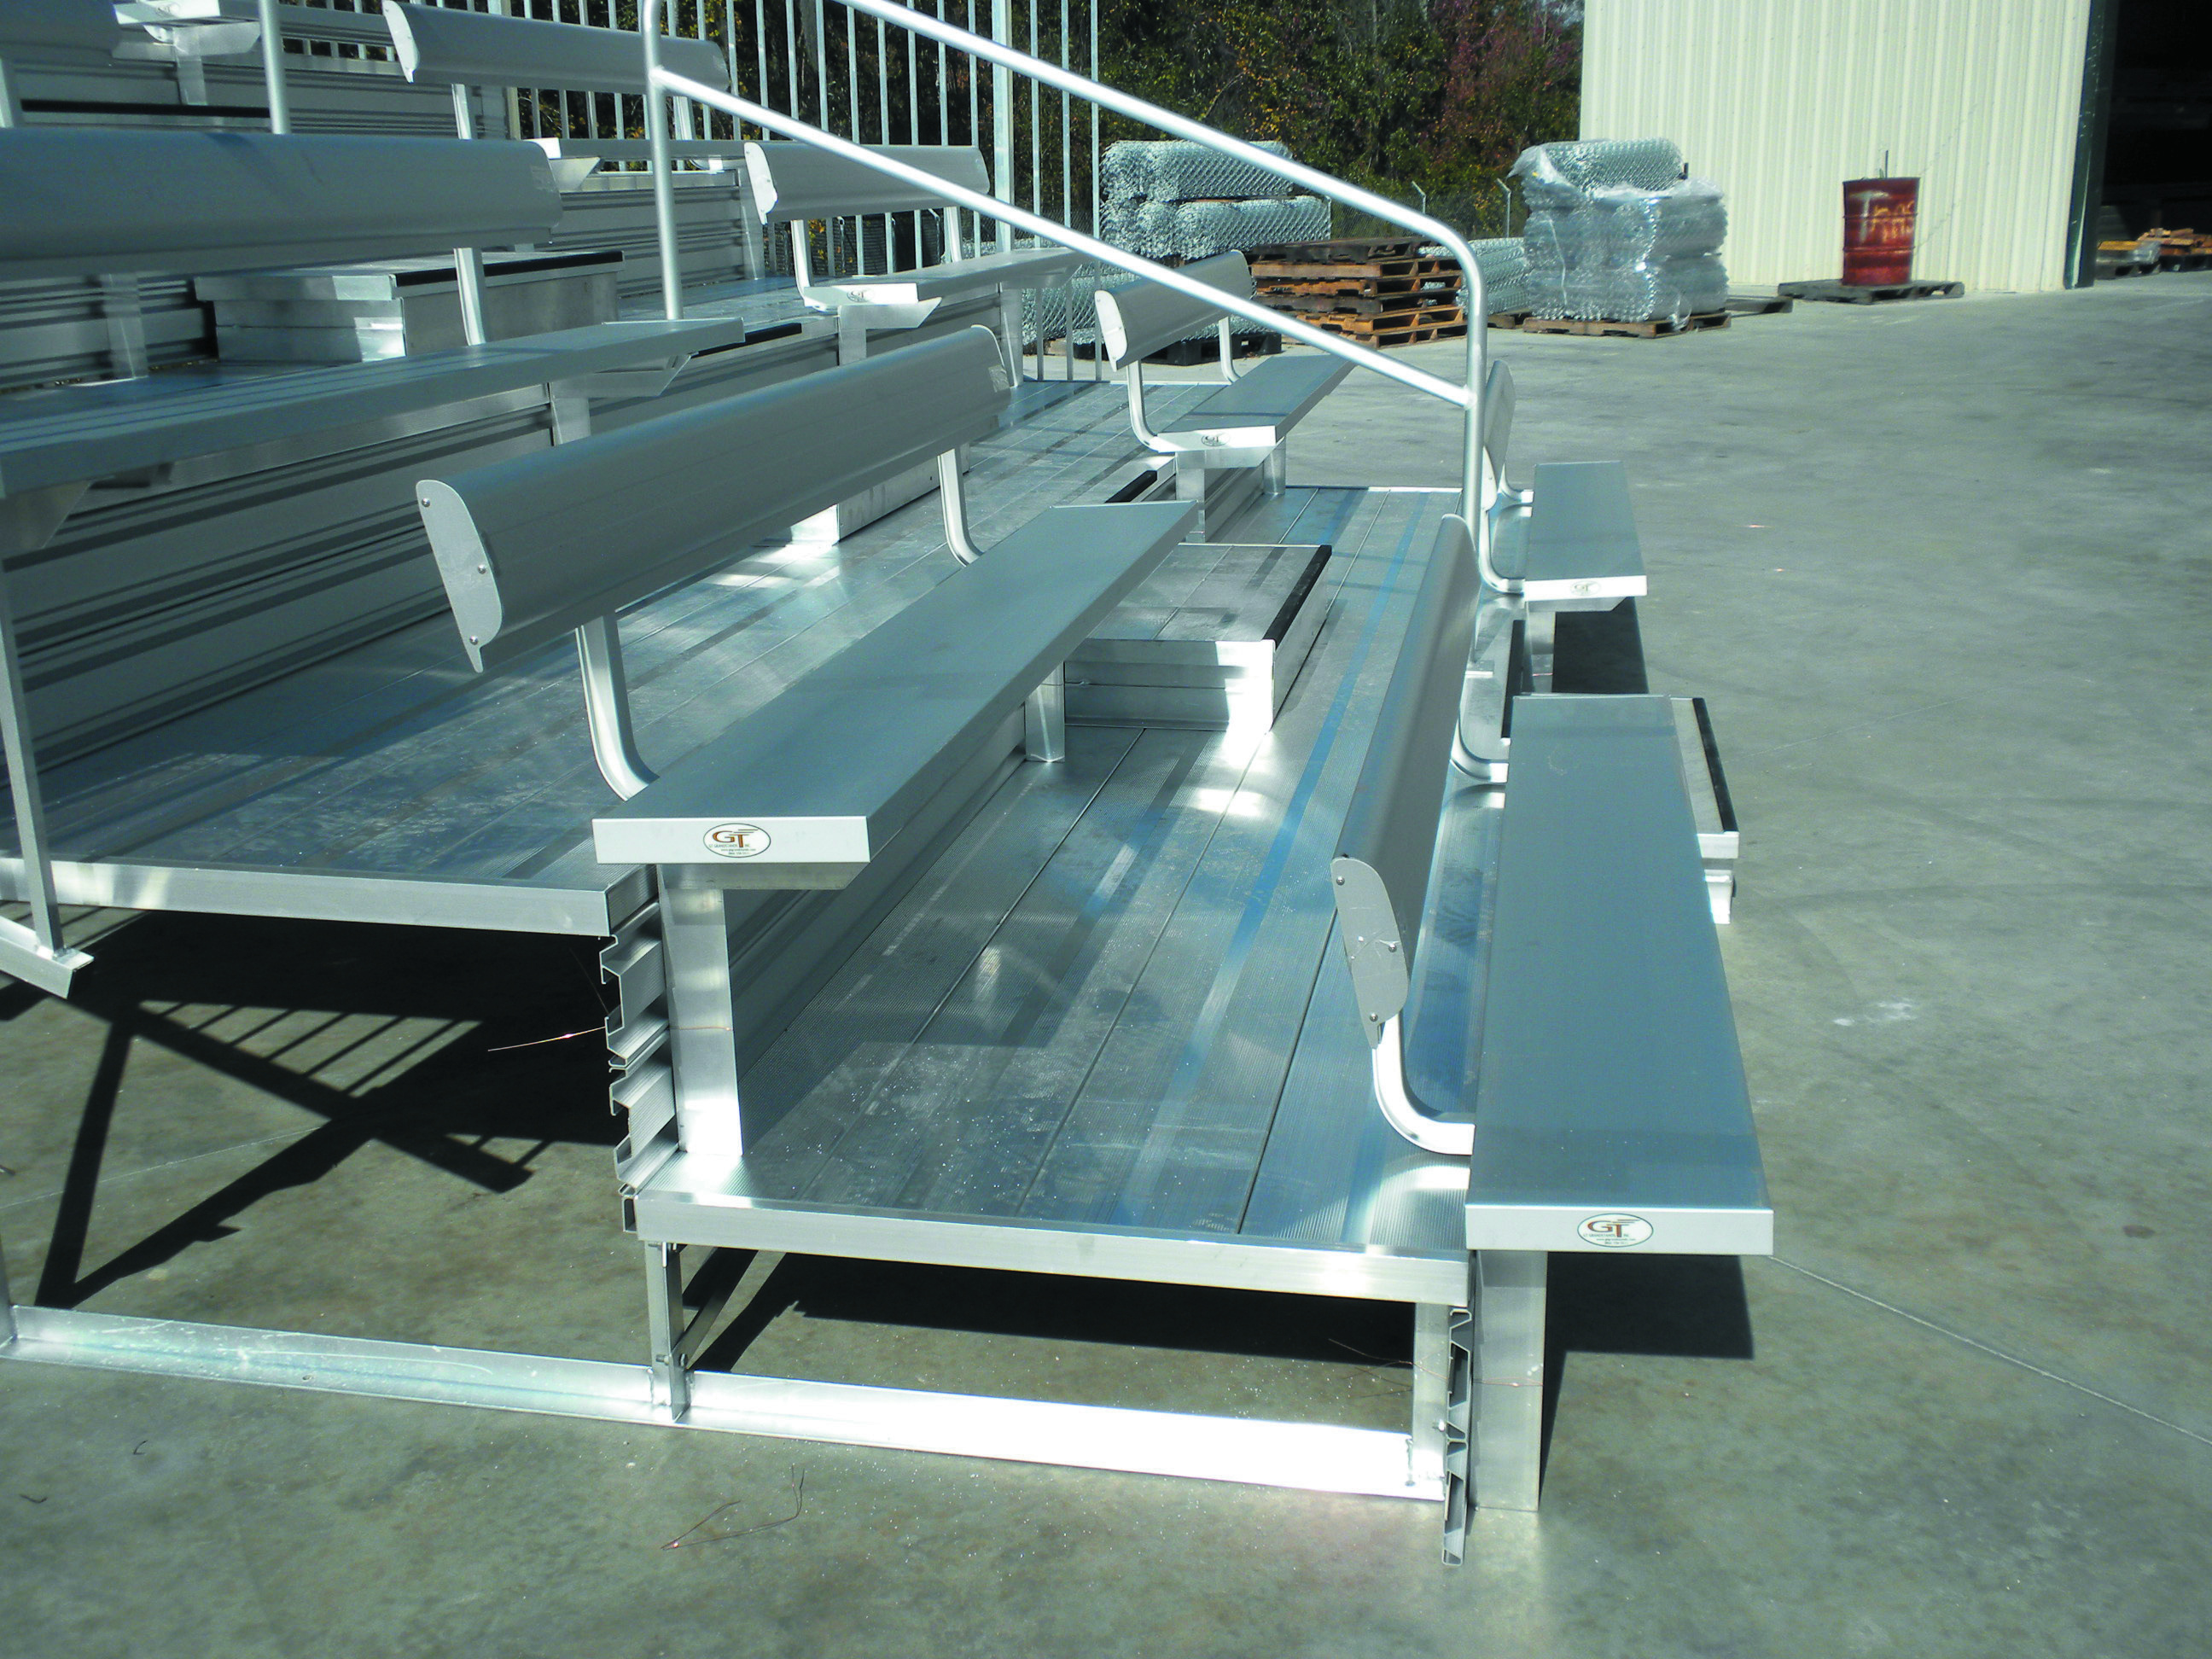 Aluminum team benchGalvanized Bench with BackGalvanized Bench without BackAluminum Bench without Back